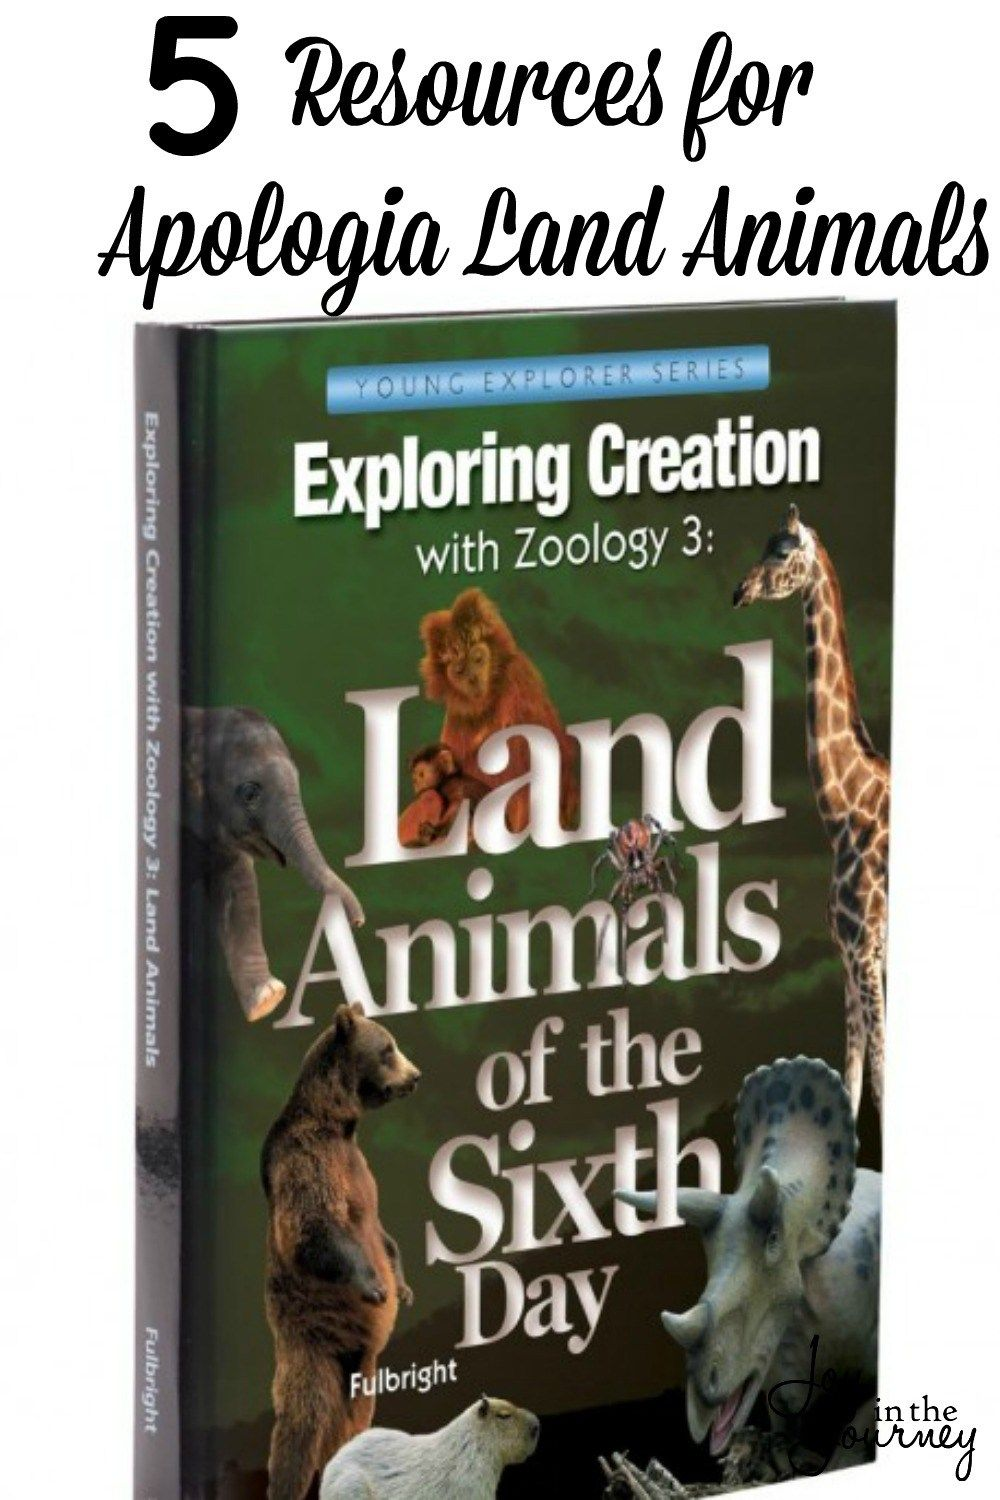 5 Must Have Resources for Apologia Land Animals - Joy in the Journey